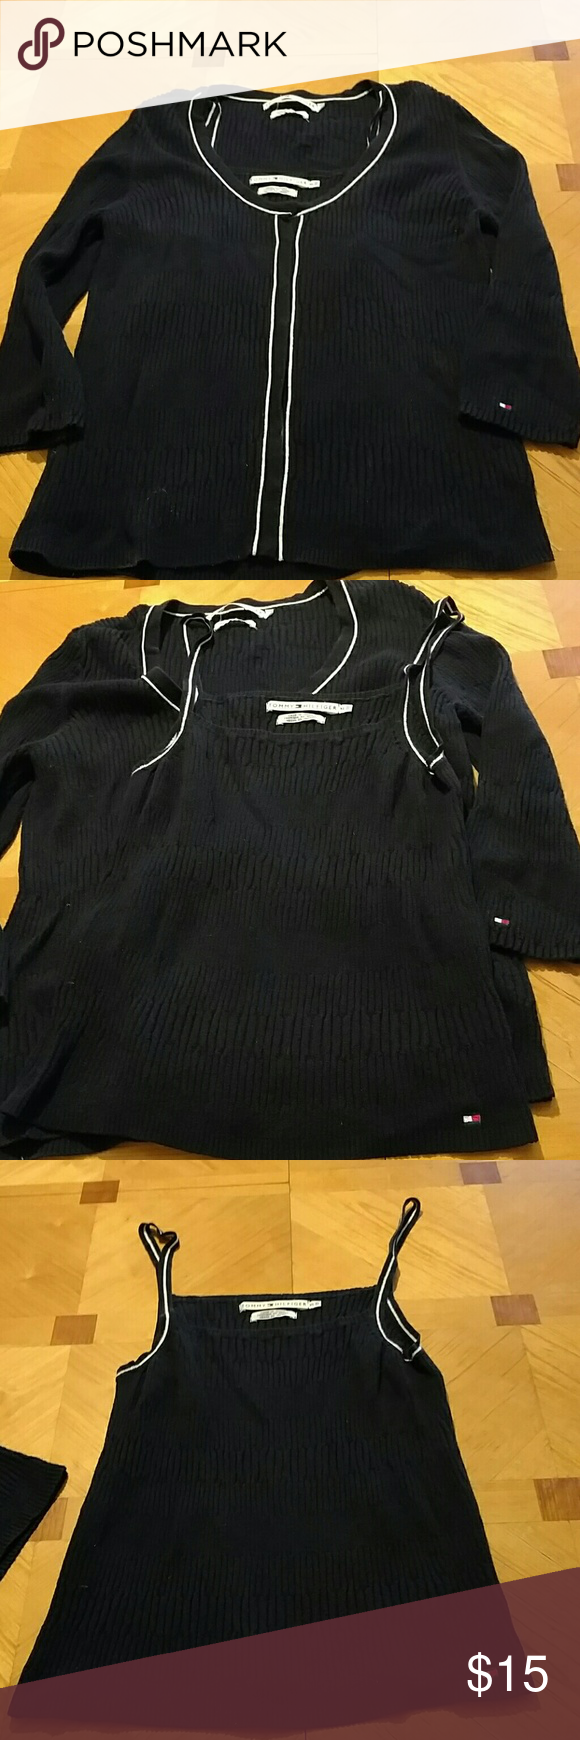 Tommy Hilfiger sweater and tank Tommy Hilfiger sweater and tank top. Very pretty. Excellent condition. Smoke free home. Womens size XL. Navy blue with white stripes. Tommy Hilfiger Tops